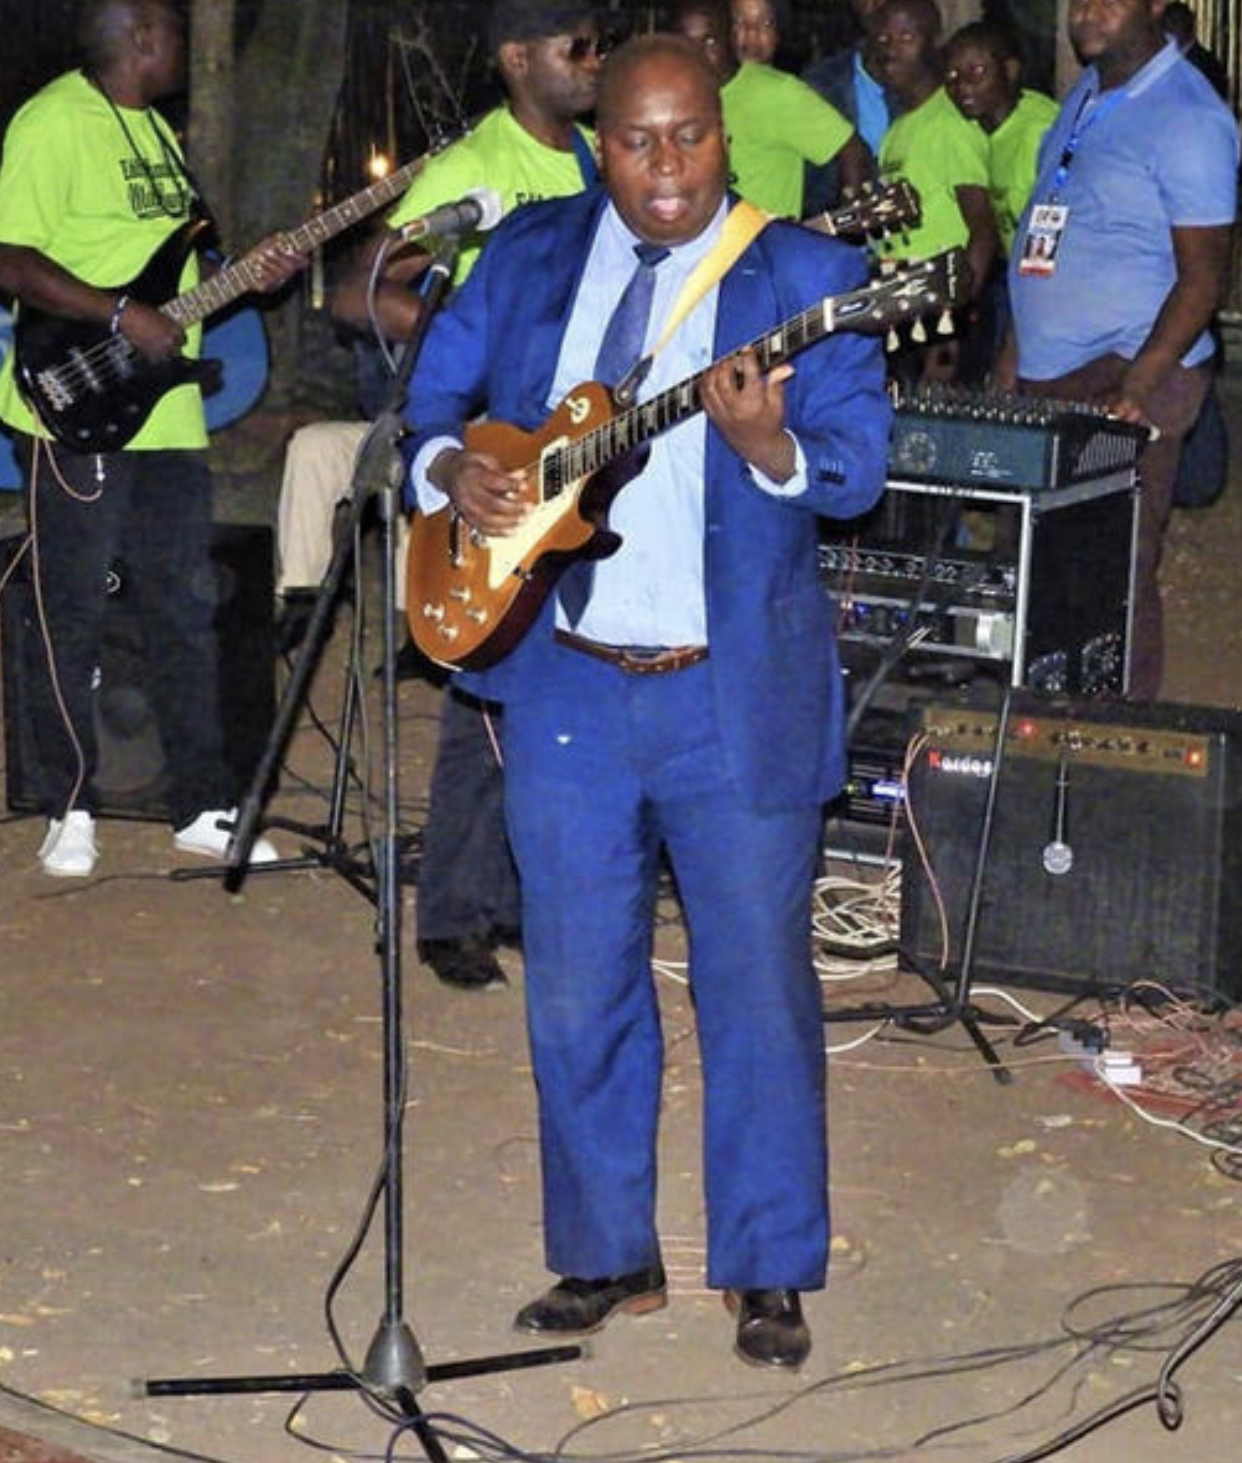 Minister Hamukale justifies paying himself K70000 from musicians fees